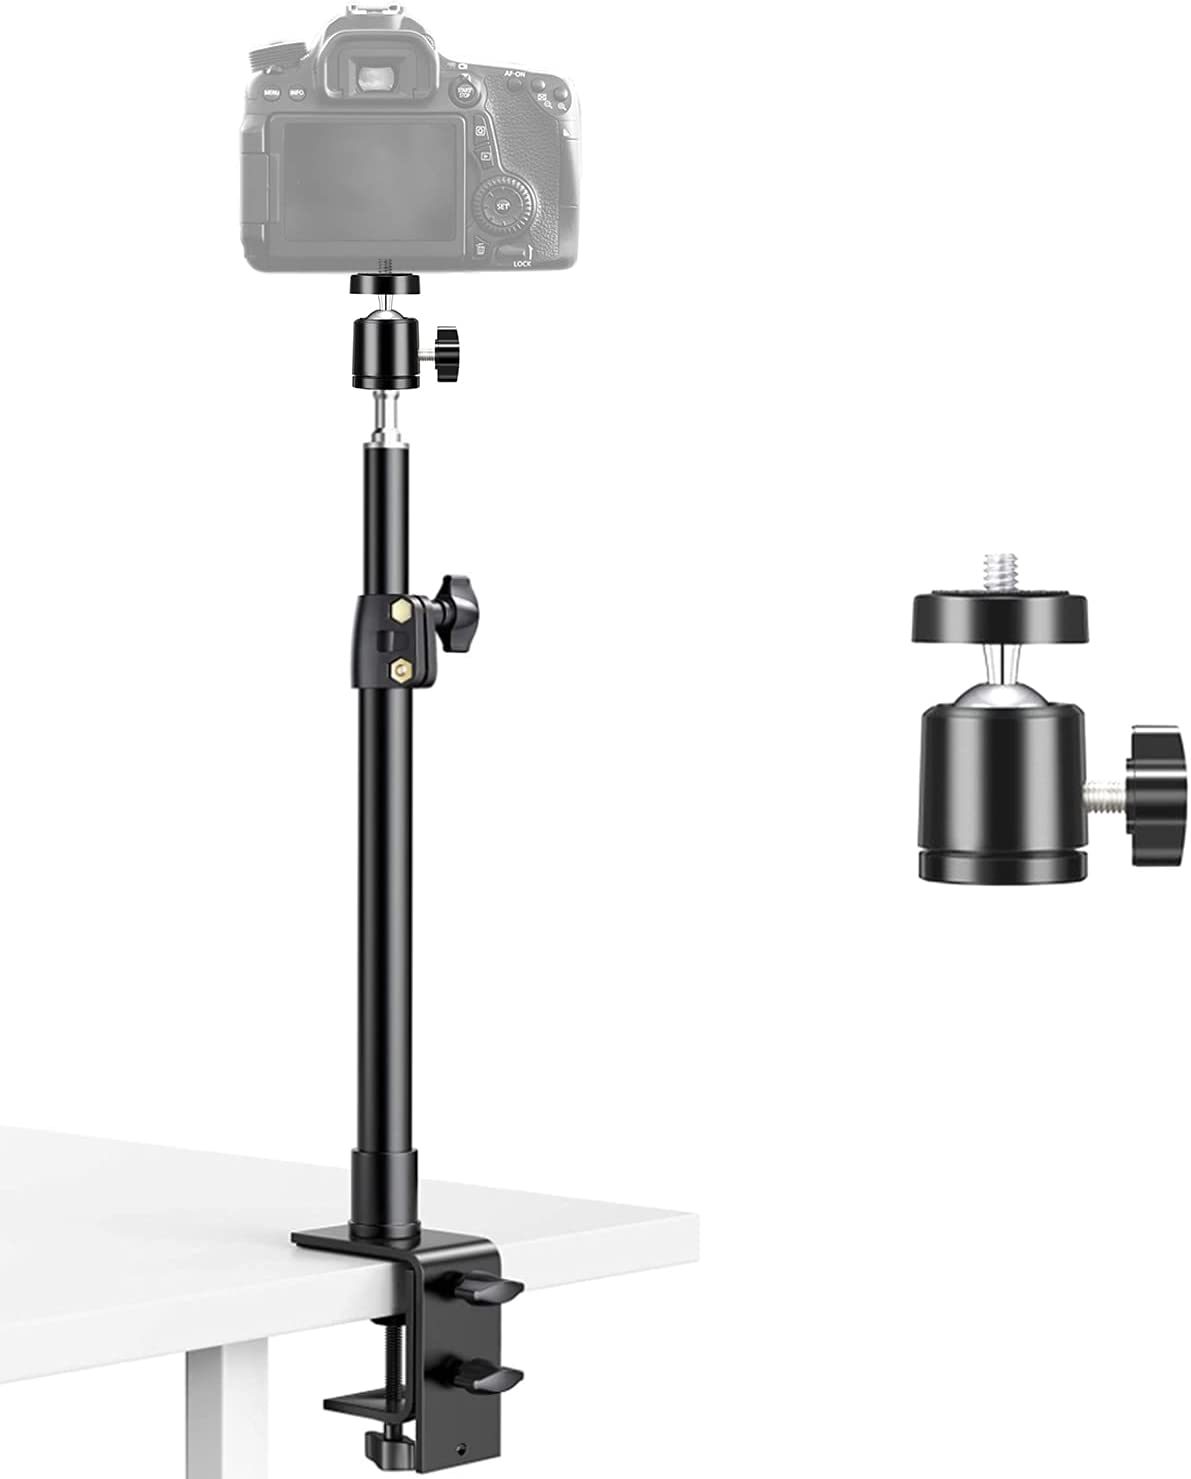 Fotoconic Camera Ranking TOP10 Desk Mount Stand with Ro 4